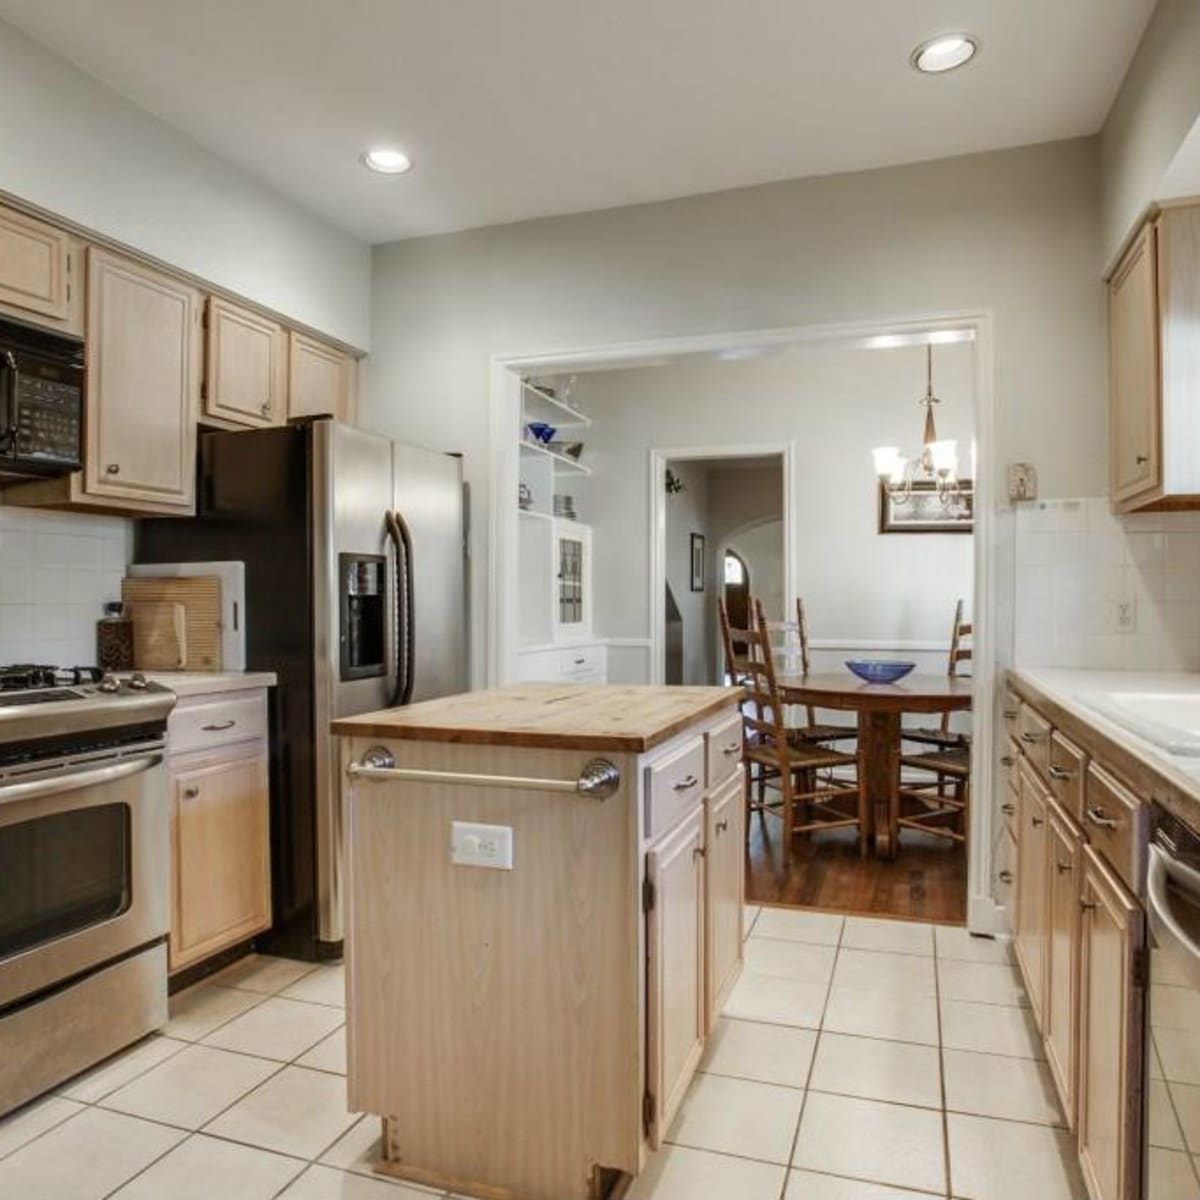 522 Monte Vista kitchen